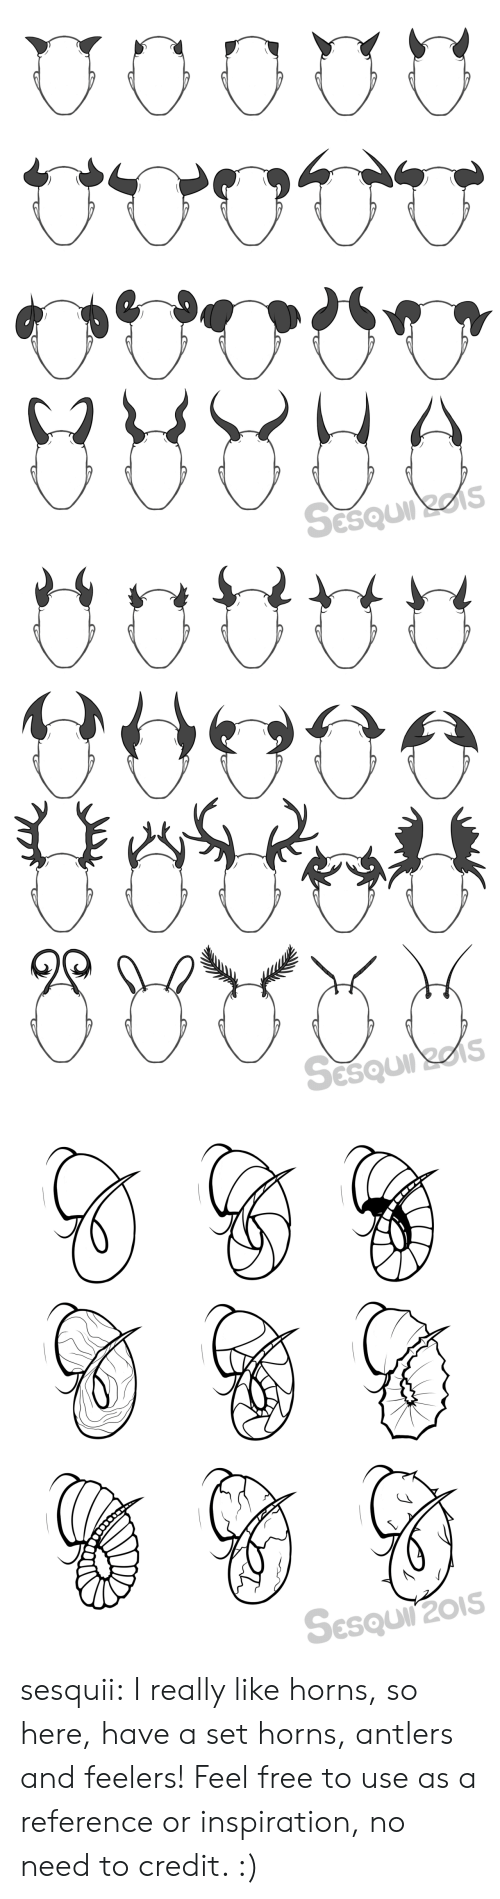 Target, Tumblr, and Blog: Sesquirzes   Sesquirzes   SESQUIT201S sesquii: I really like horns, so here, have a set horns, antlers and feelers! Feel free to use as a reference or inspiration, no need to credit. :)